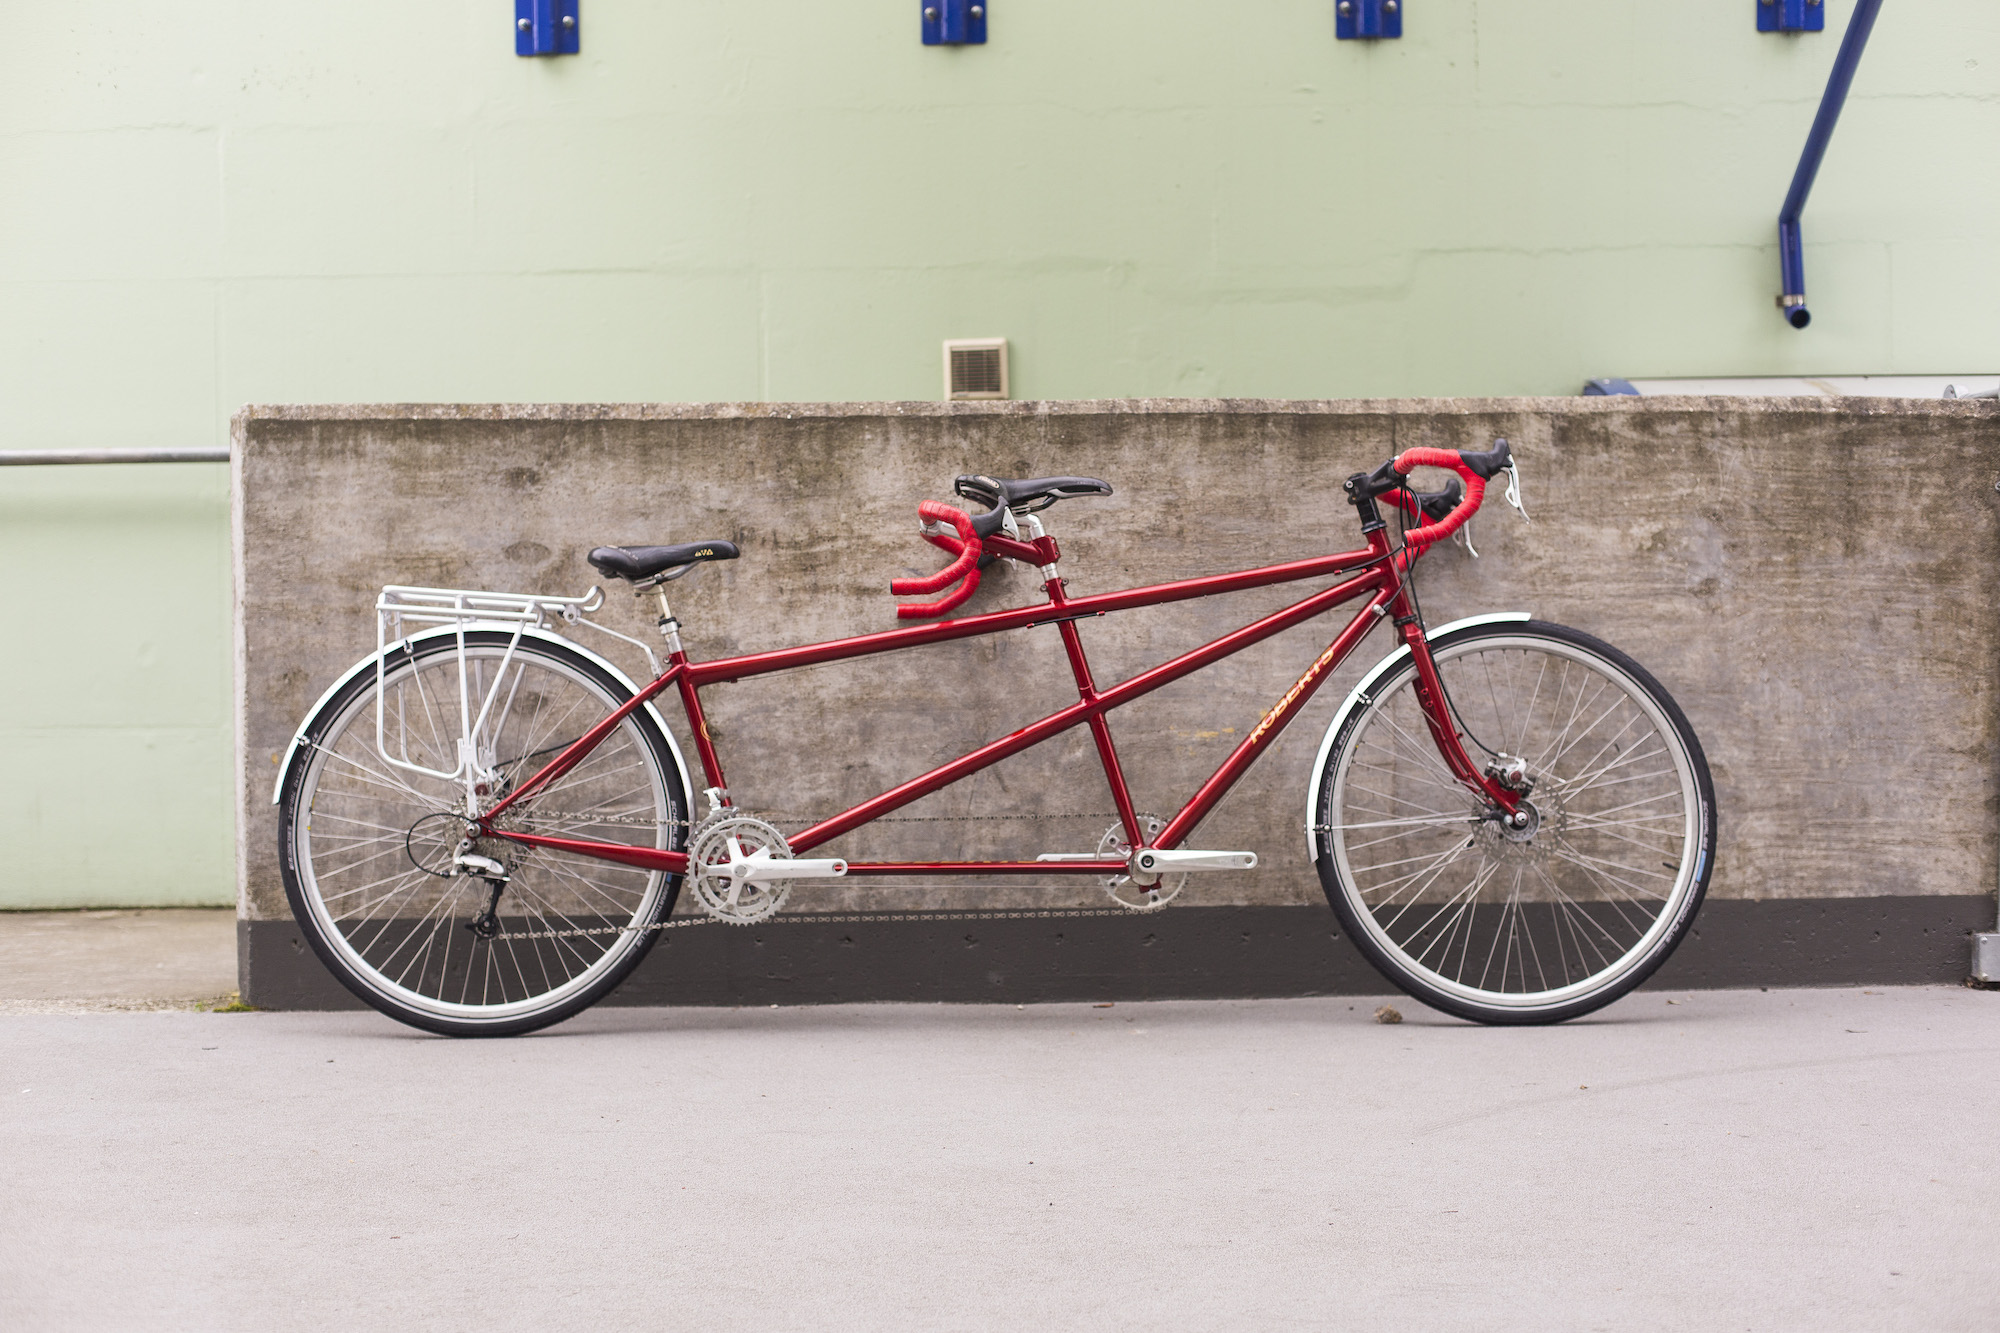 seabass-cycles-bikes-parts-instore-2-april-2019-roberts-tandem-candy-red-4366.jpg